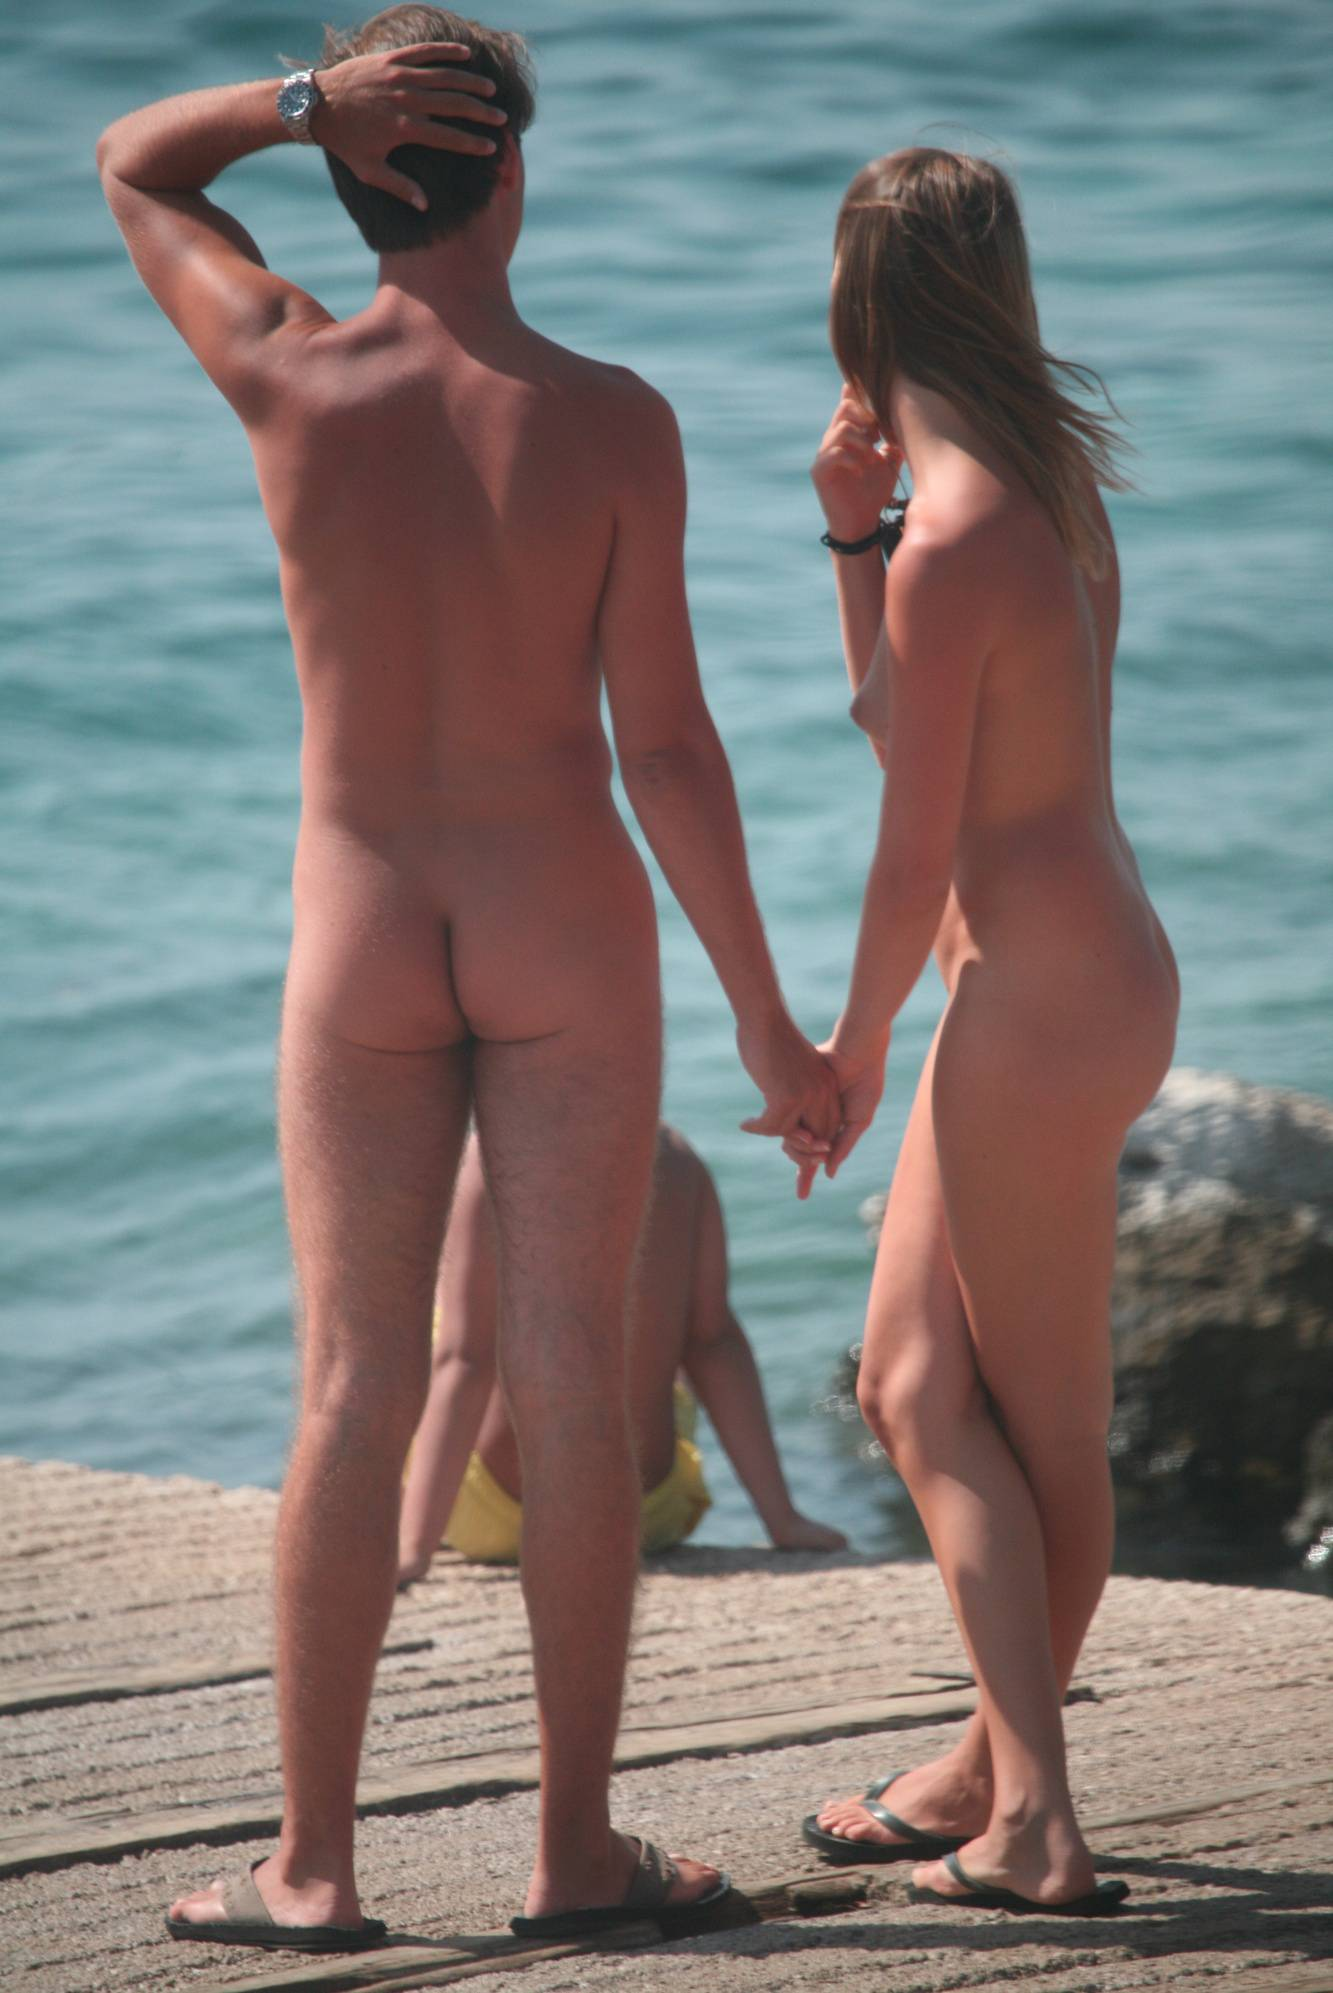 Nudist Pictures Nora FKK In Love Couples - 2